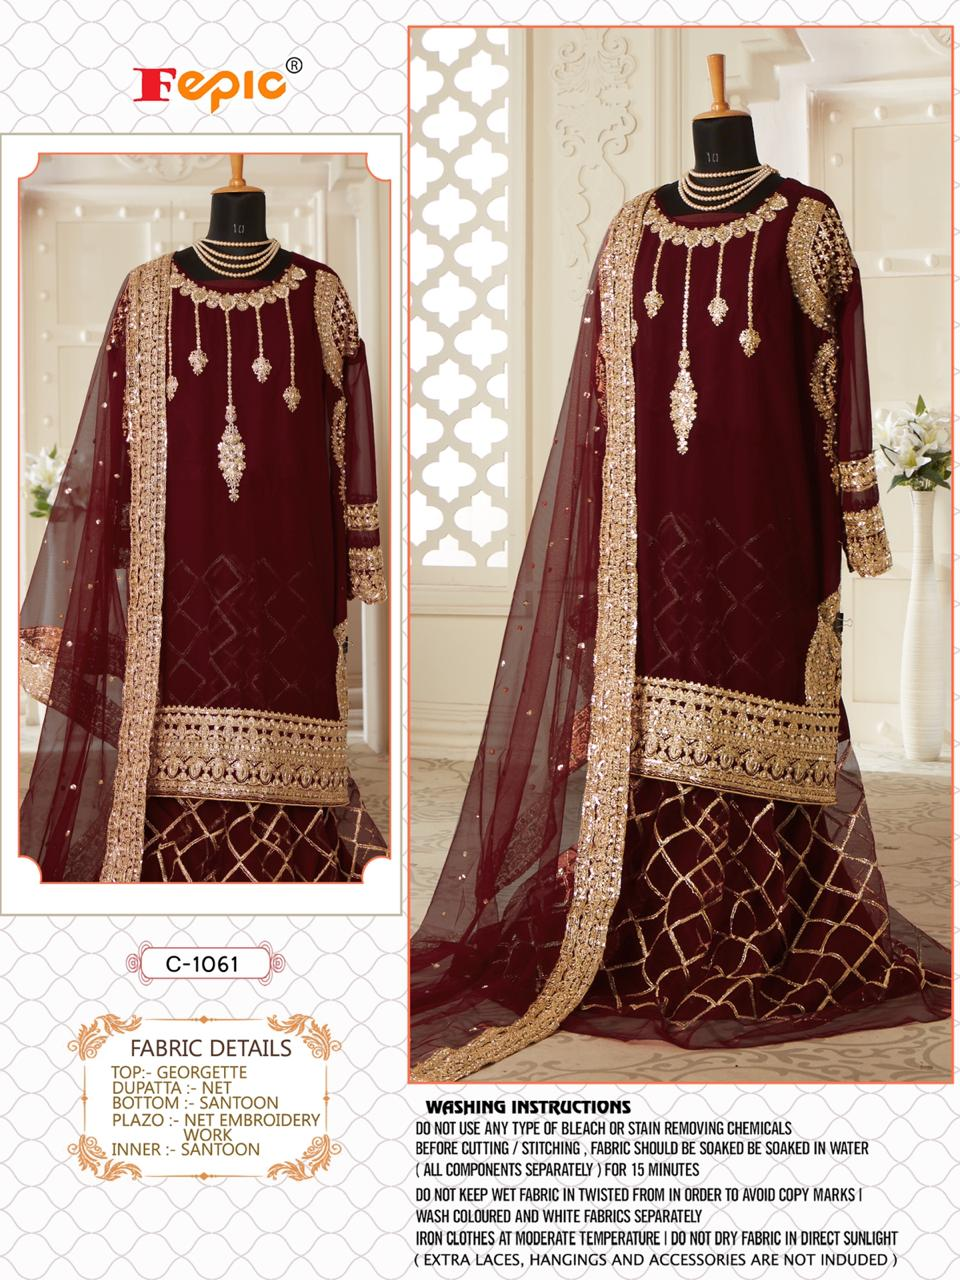 FEPIC SHARE FEPIC READY TO SHIP SINGLE SALWAR KAMEEZ 16-OCT-2021 5